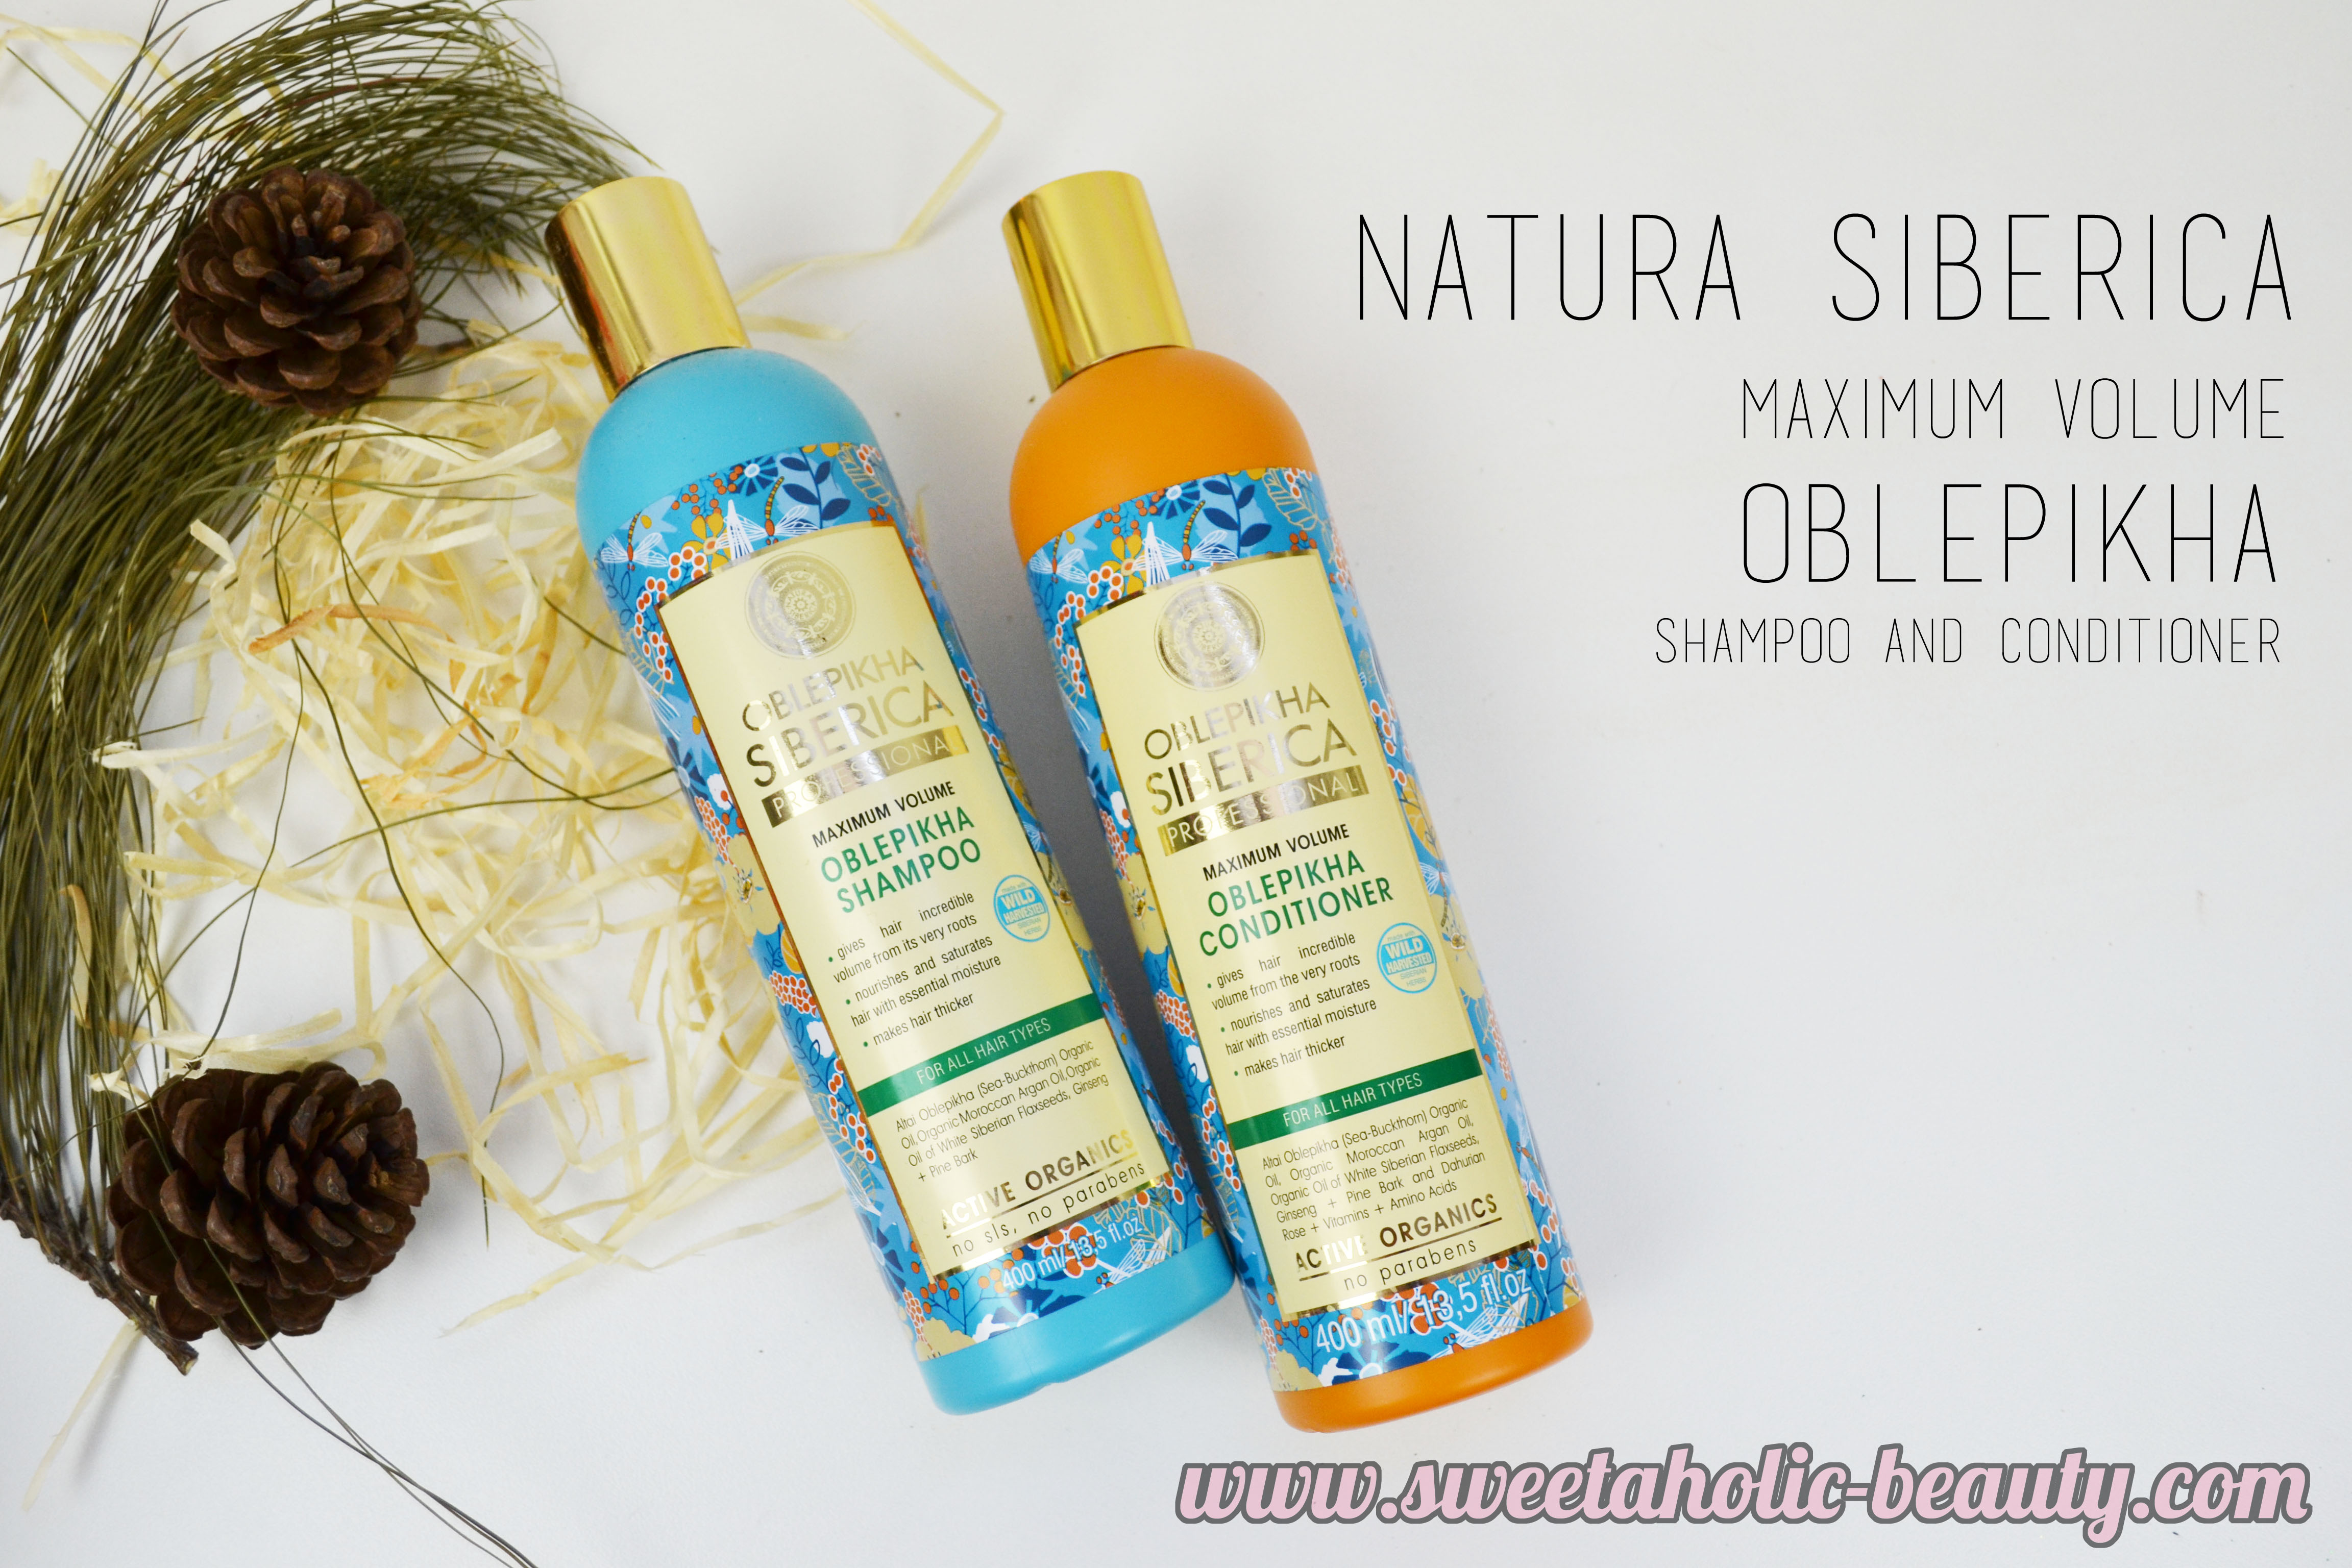 Natura Siberica Maximum Volume Oblepikha Shampoo & Conditioner Review